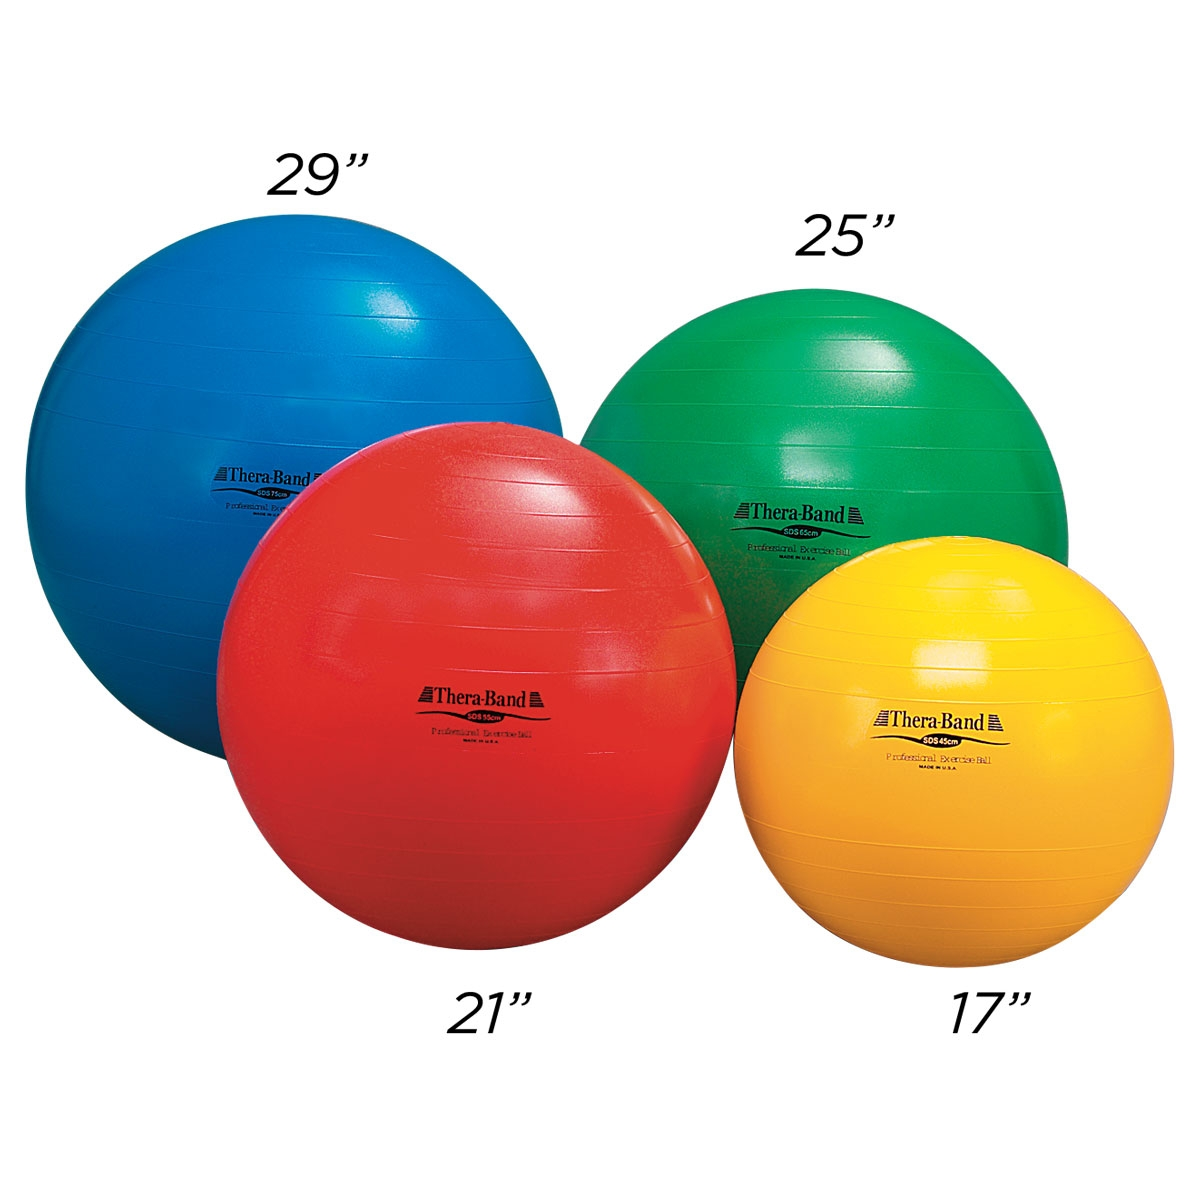 thera-band set of exercise balls at different sizes from mancino